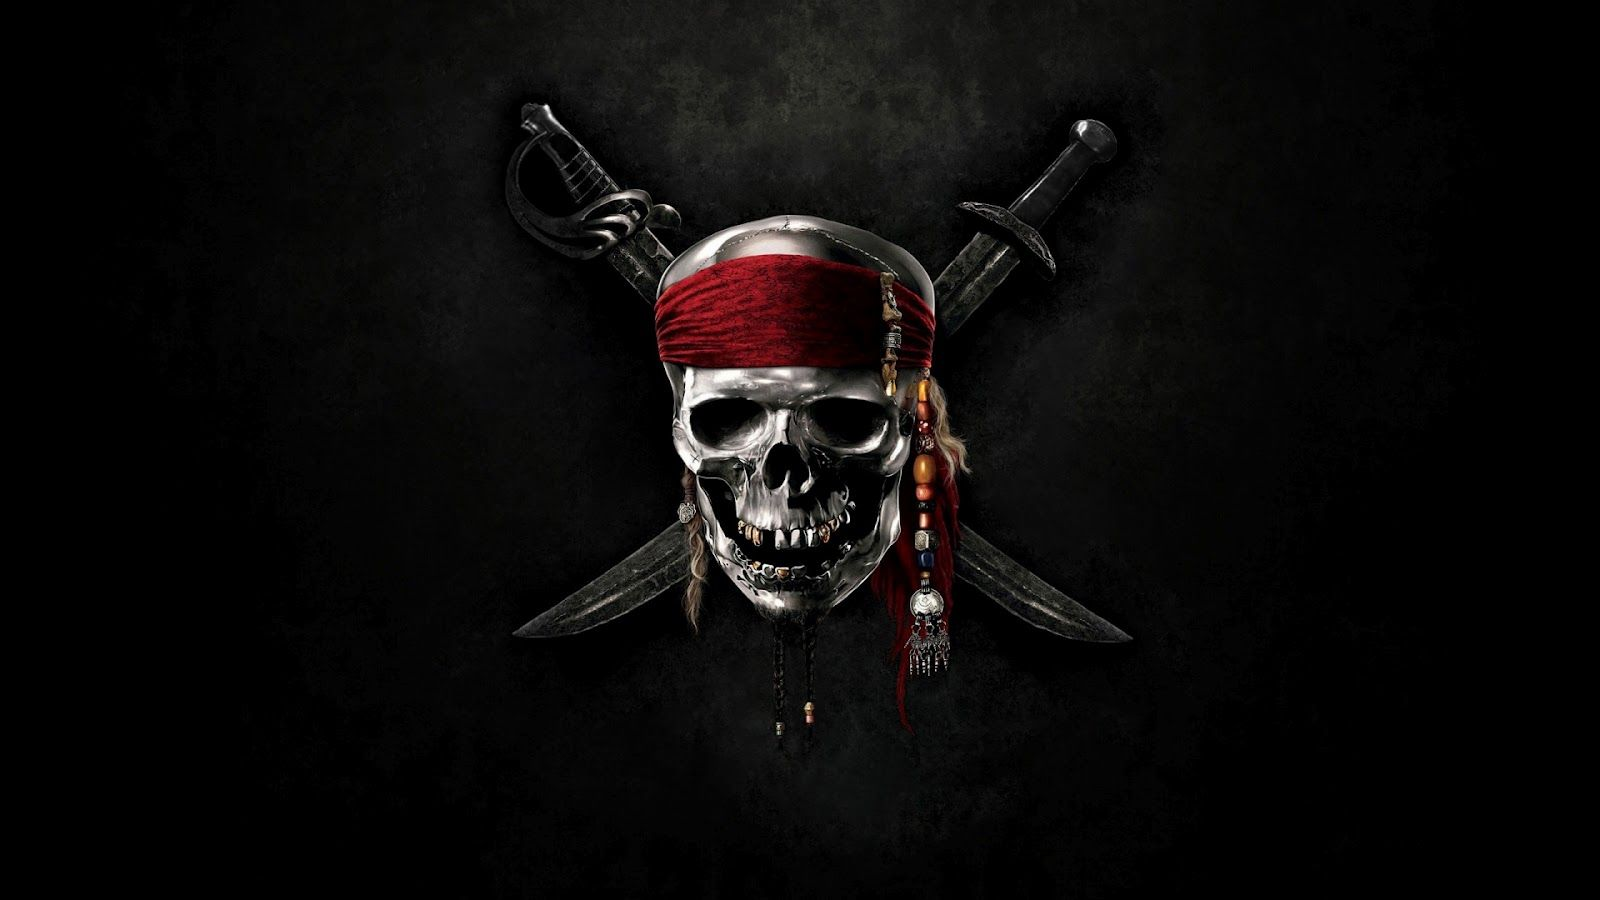 Ghost Pirate Ship Wallpaper   1024×768 Pirate Wallpaper (47 Wallpapers) | Adorable Wallpapers